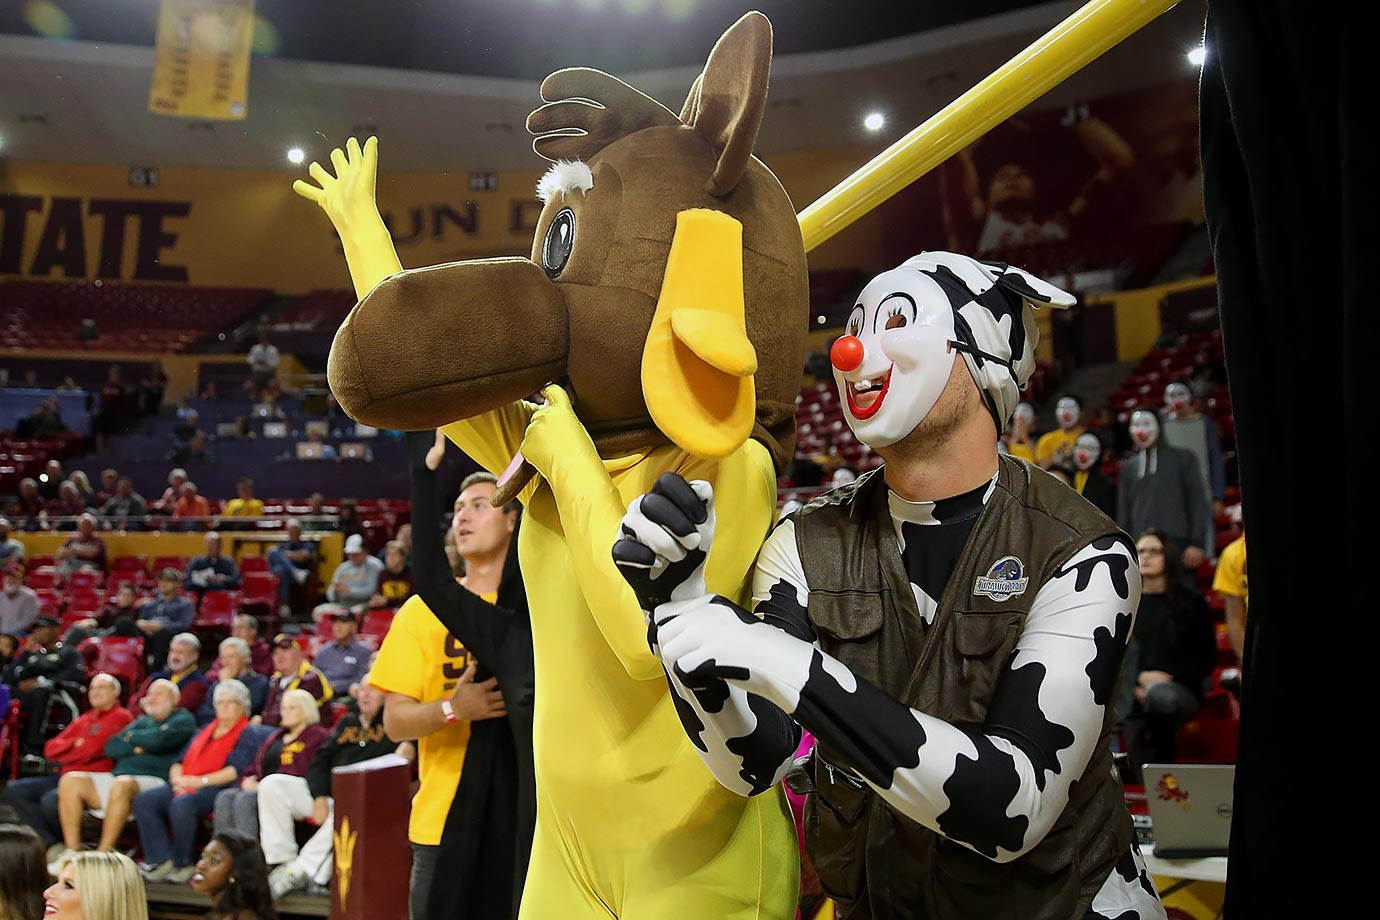 Arizona State hoops fans have the right idea in trying to distract free-throw shooters, who must be confused by what they're looking at — a moose in a yellow unitard and a clown cow?